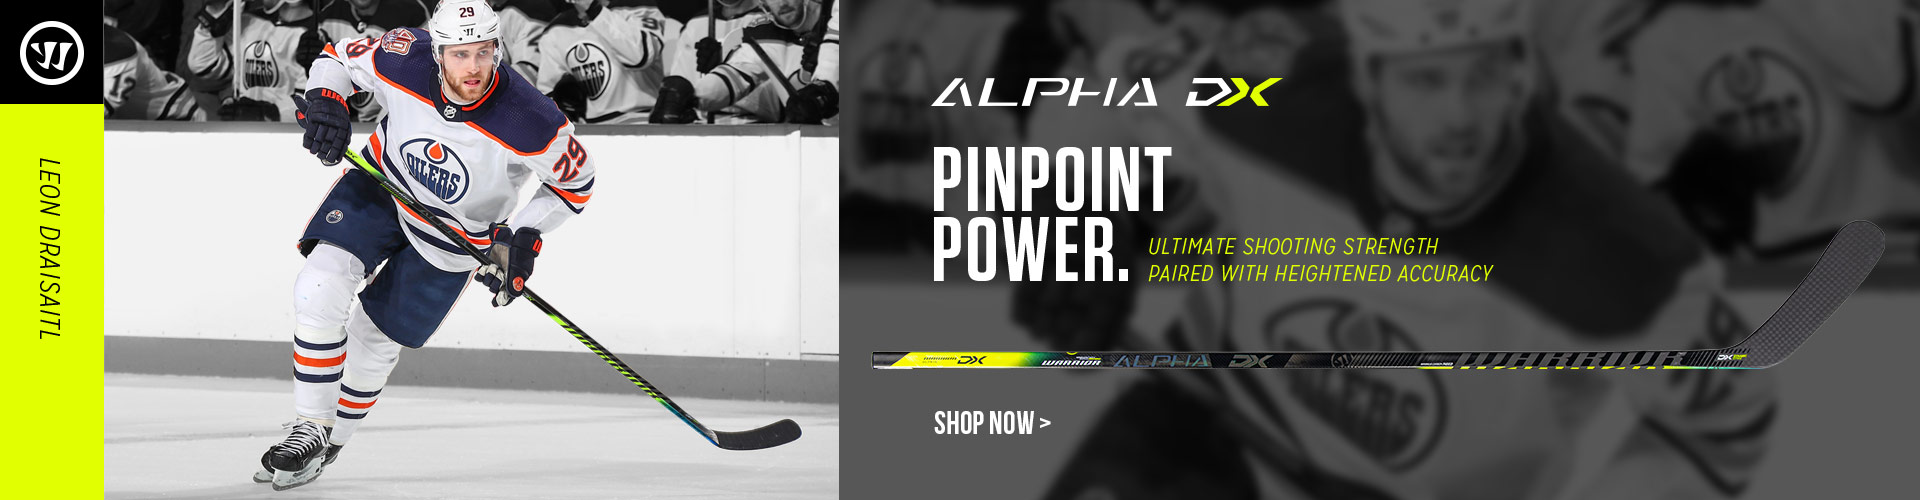 Shop The All-New Warrior Alpha Hockey Sticks Such As The Alpha DX, DX Pro, Evo, & Evo Pro For Sale In Store and Online At Your Local Source For Sports Near You.